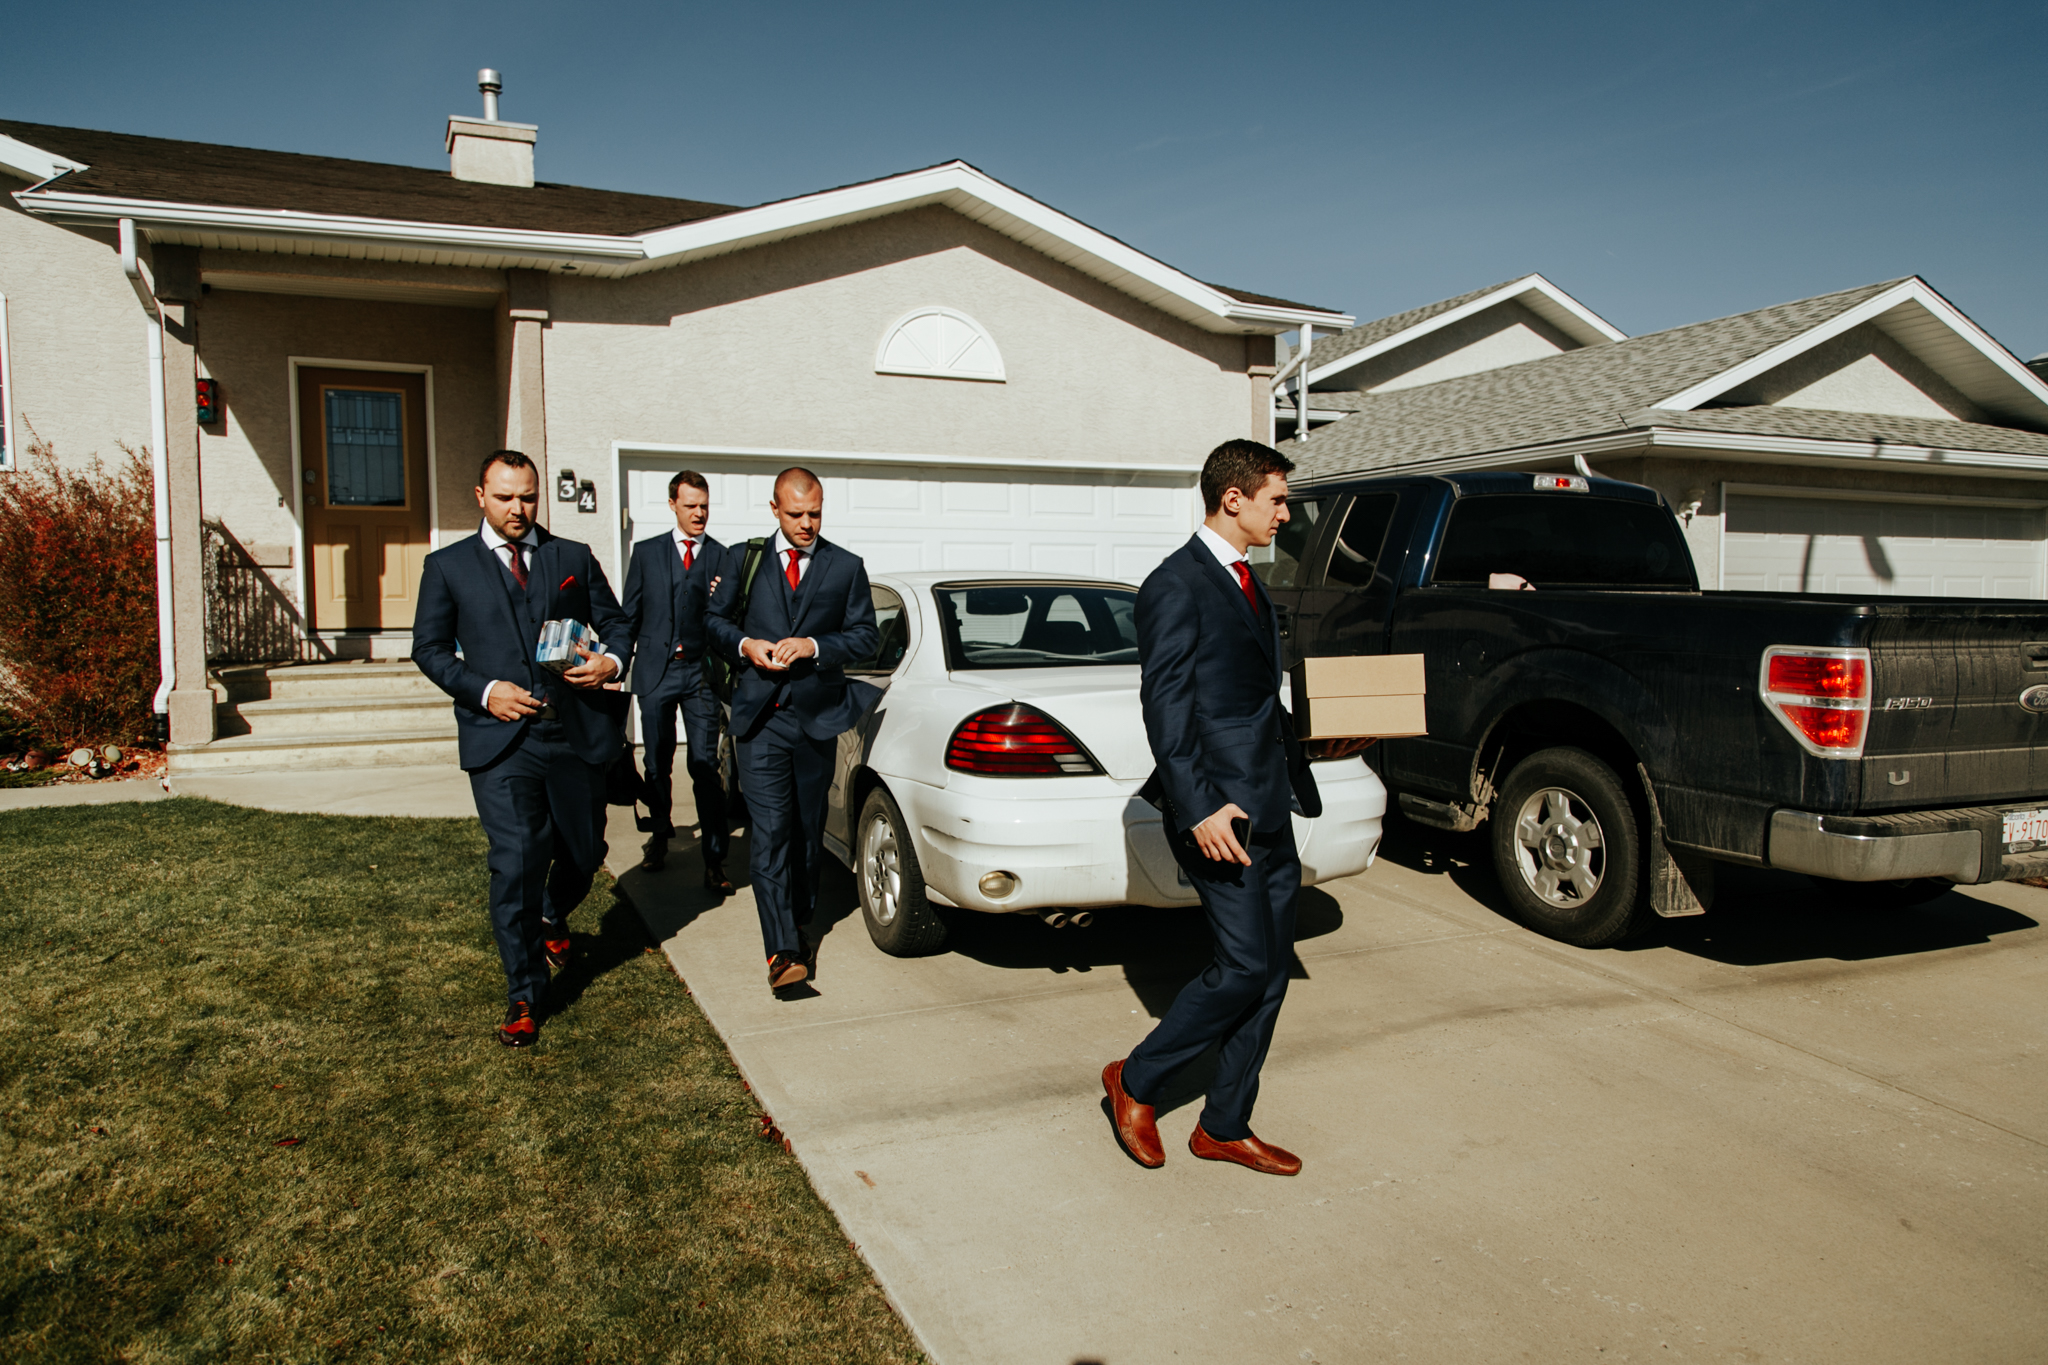 lethbridge-wedding-photographer-love-and-be-loved-photography-groom-prep-photo-image-picture-18.jpg